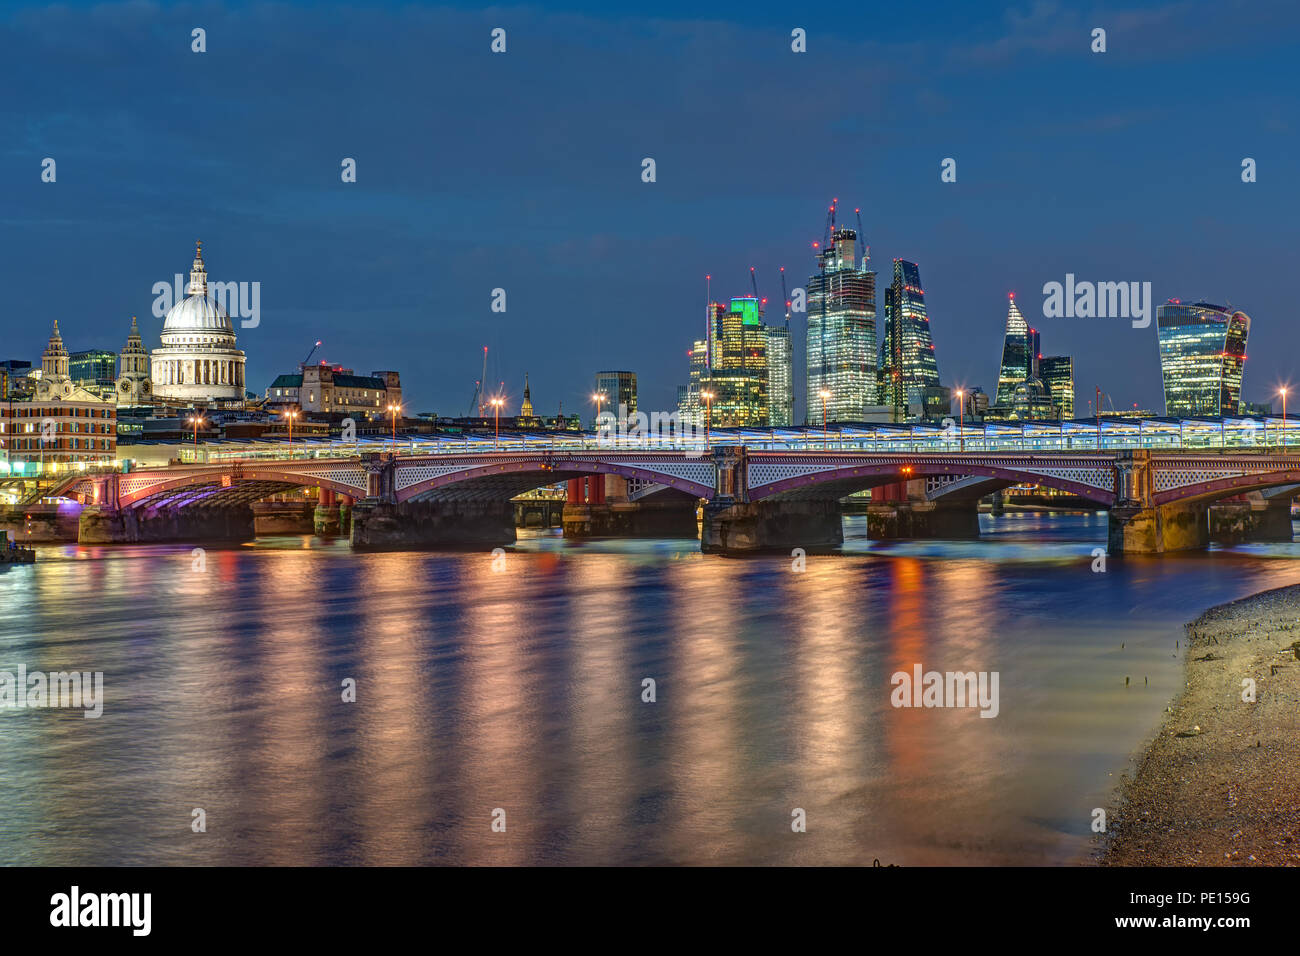 St Pauls cathedral, Blackfriars Bridge and the City of London at night - Stock Image